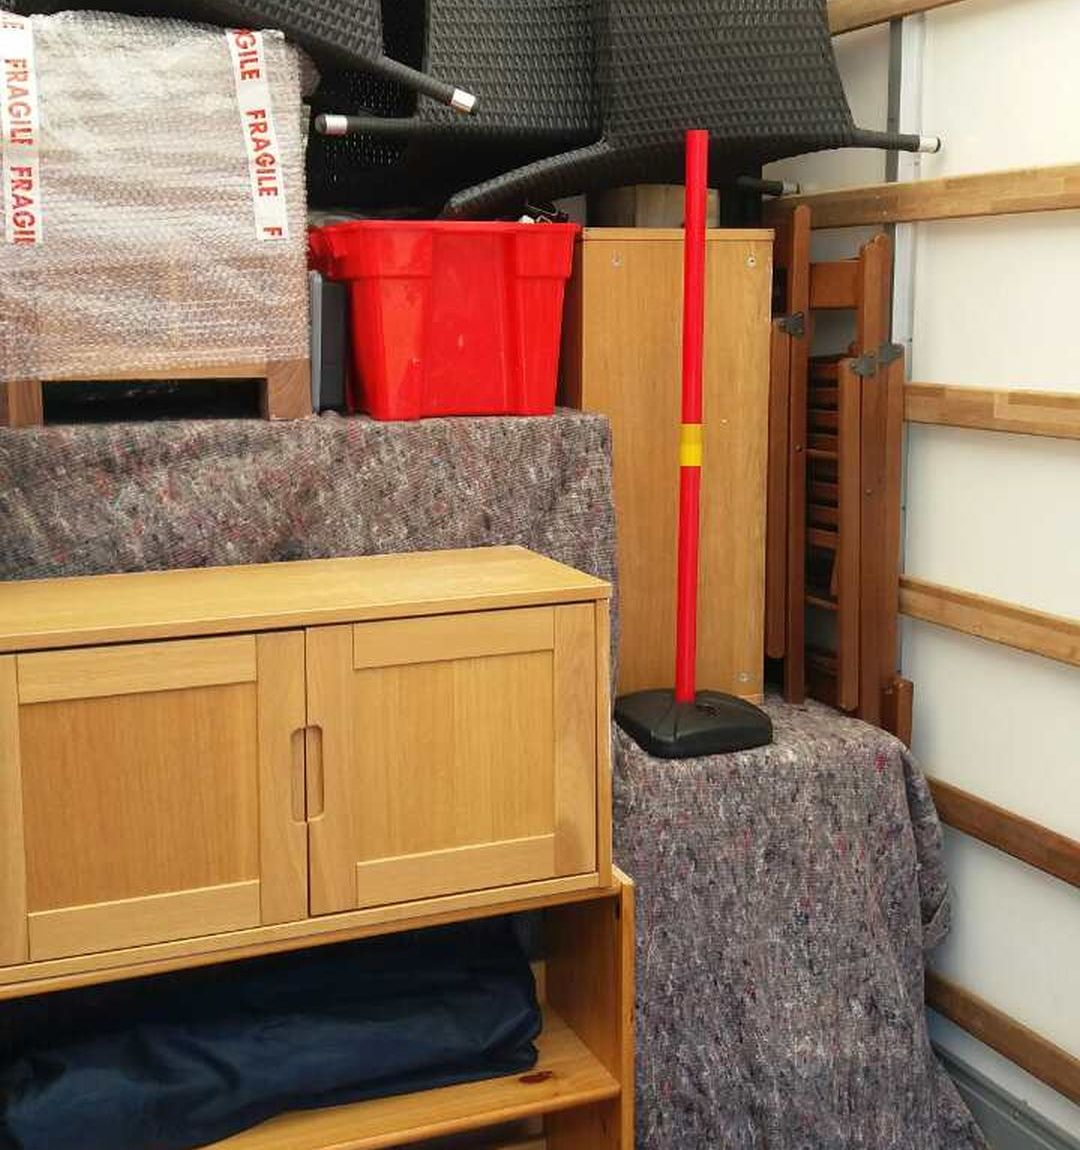 SE13 office removal companies Hither Green